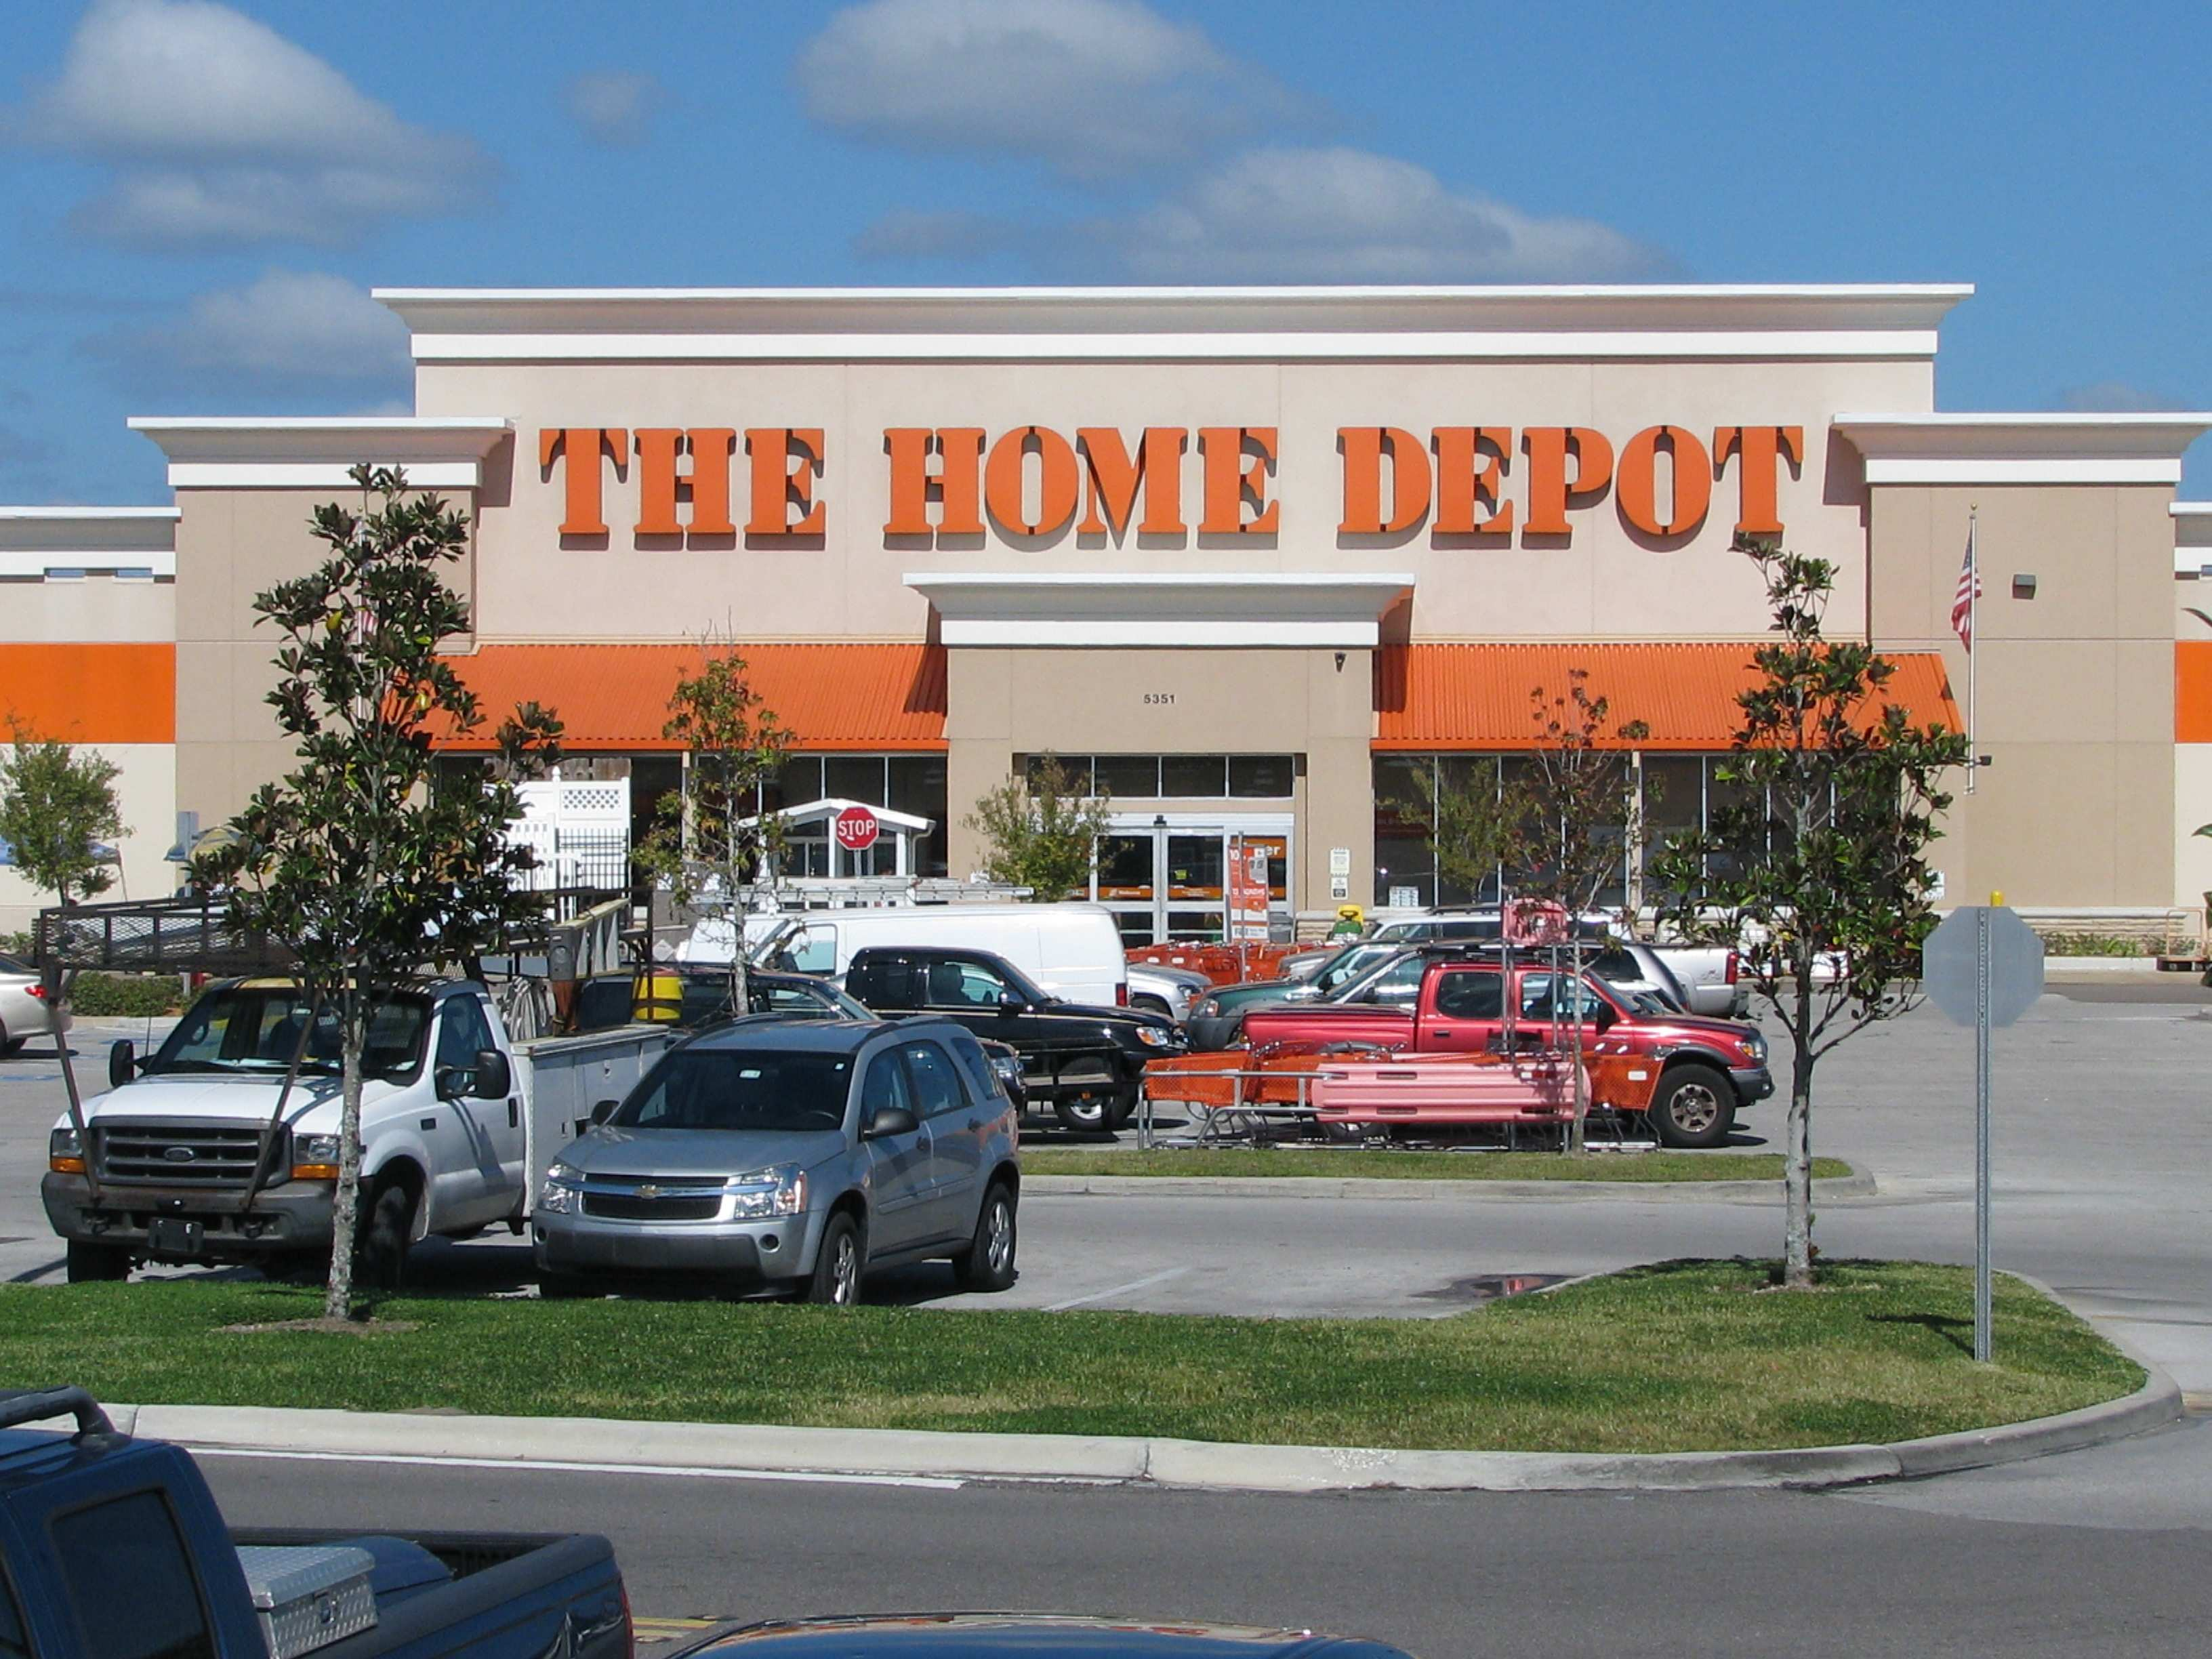 Home depot and makerbot to expand their in store pilot program to 39 stores total in u s Home mart furniture addison tx